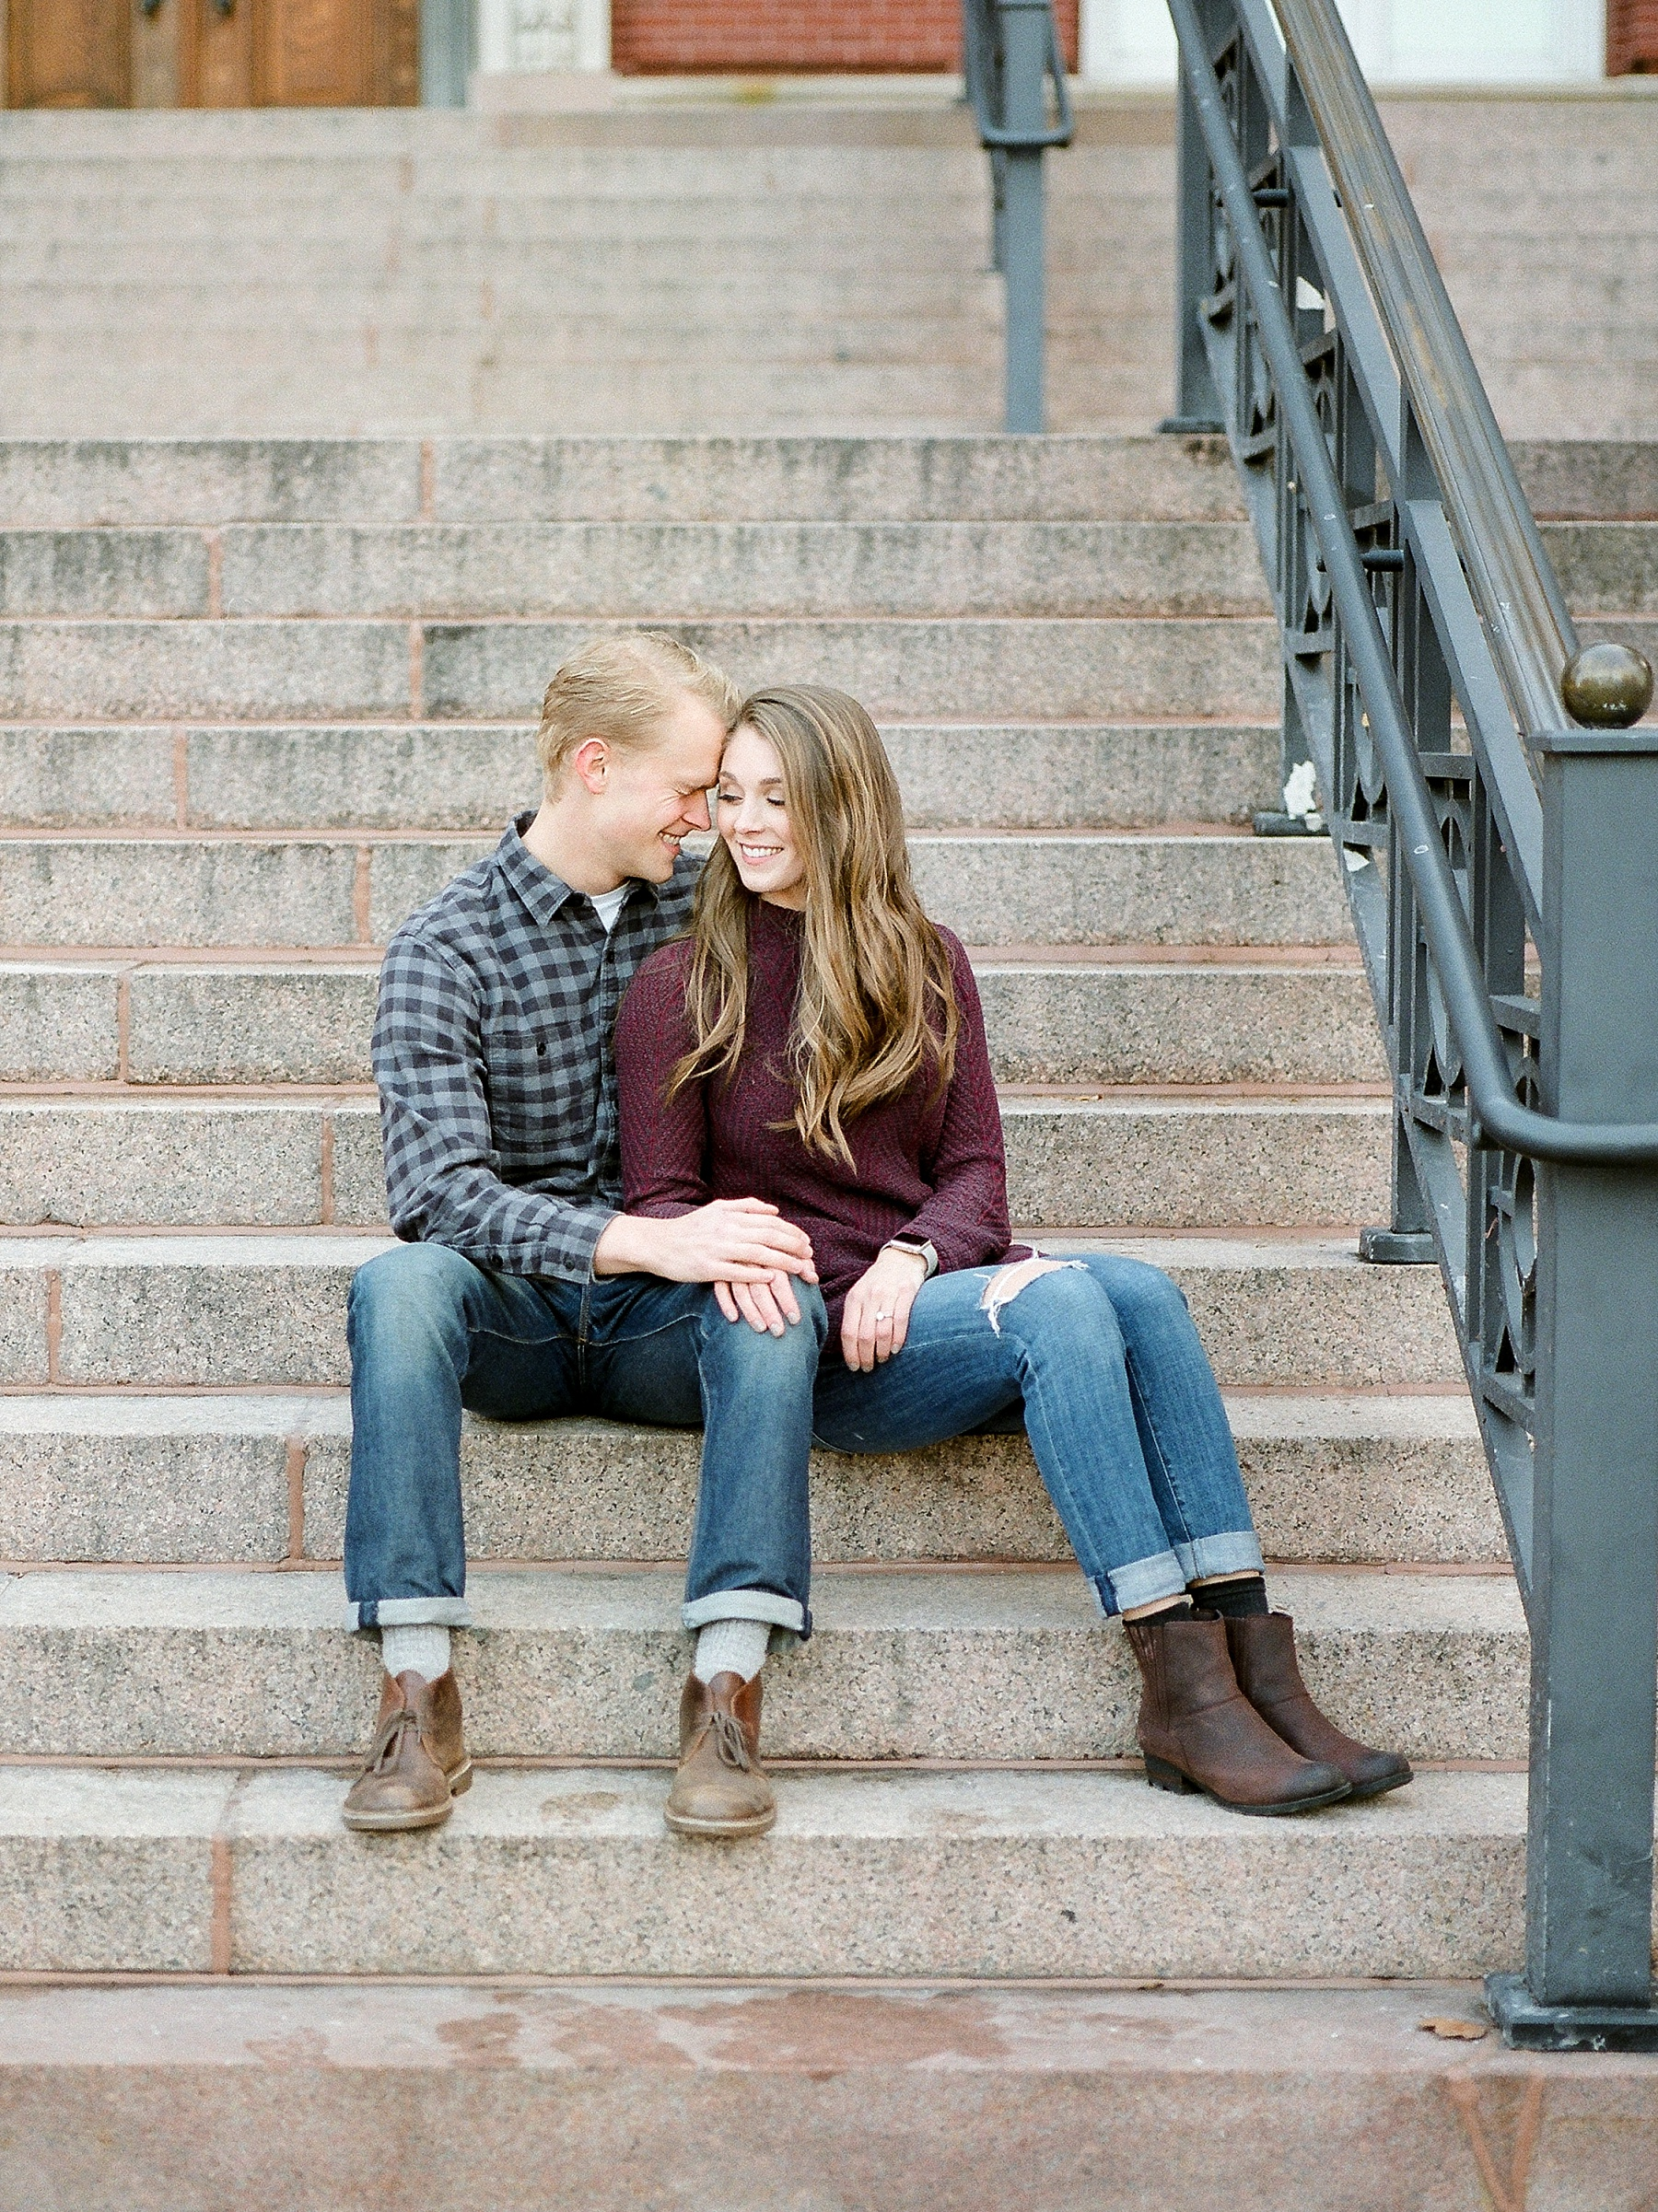 Downtown Jefferson City Engagement Session in Winter at Old Shoe Factory by Kelsi Kliethermes Photography Kansas City Missouri Wedding Photographer_0013.jpg